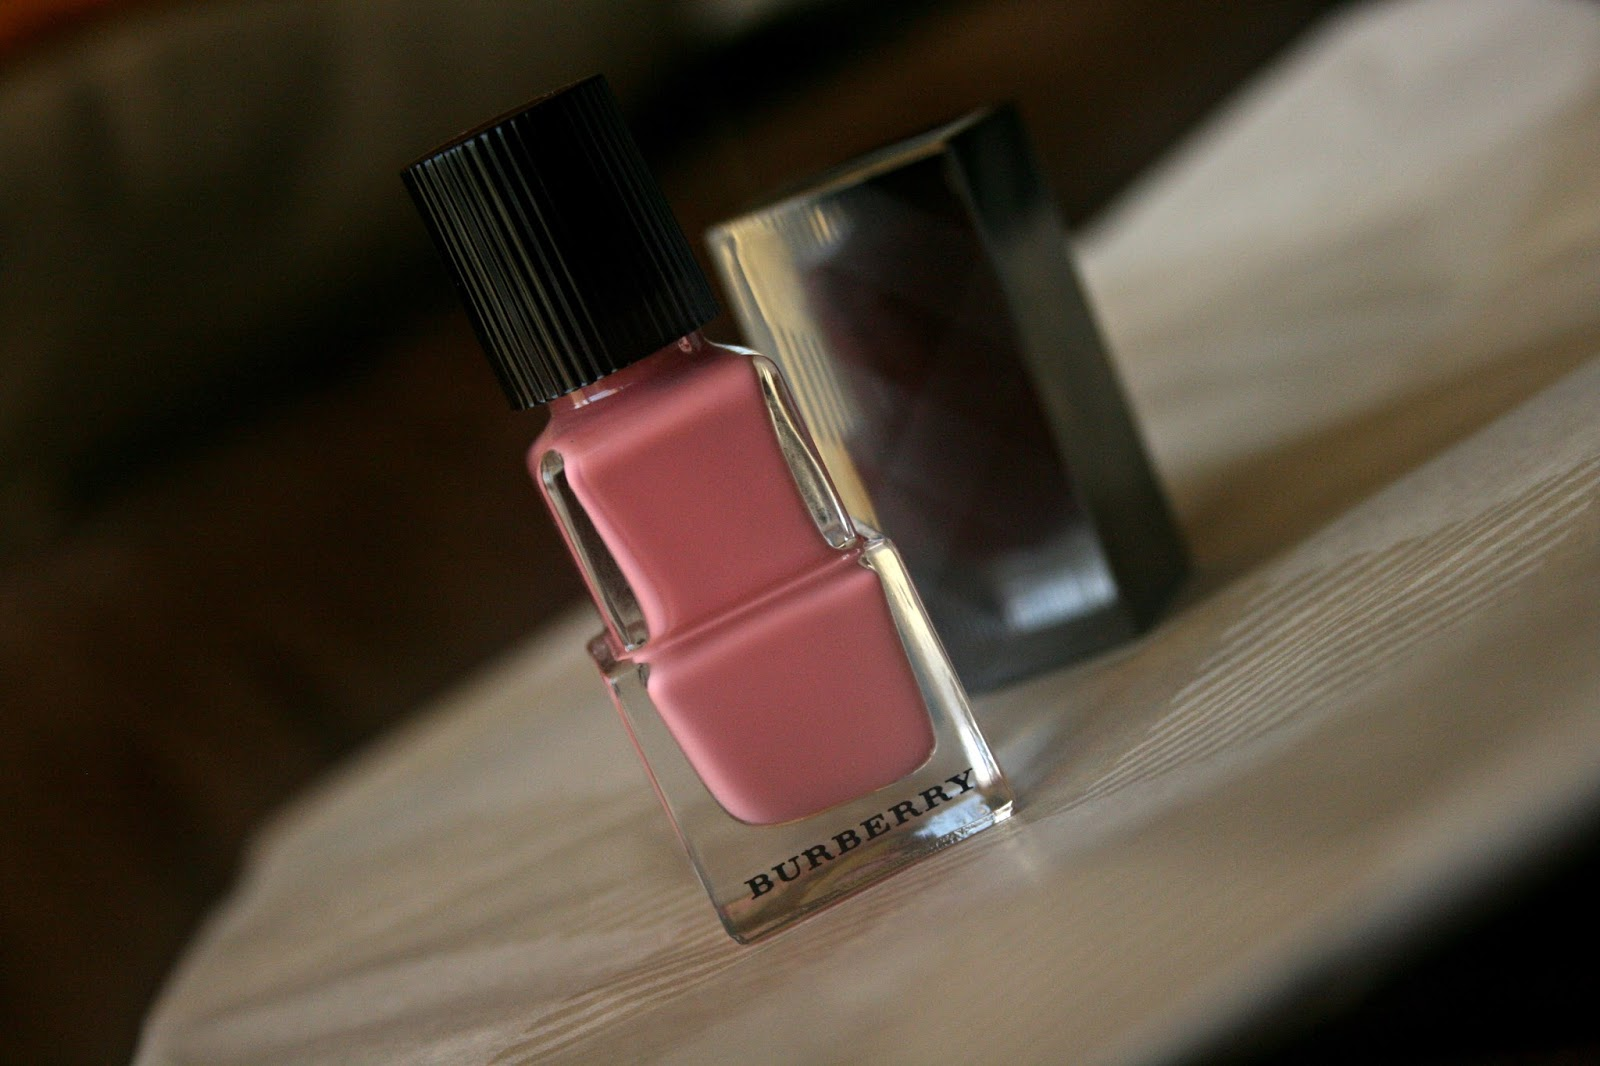 Burberry Beauty Nail Polish in Rose Pink No. 400